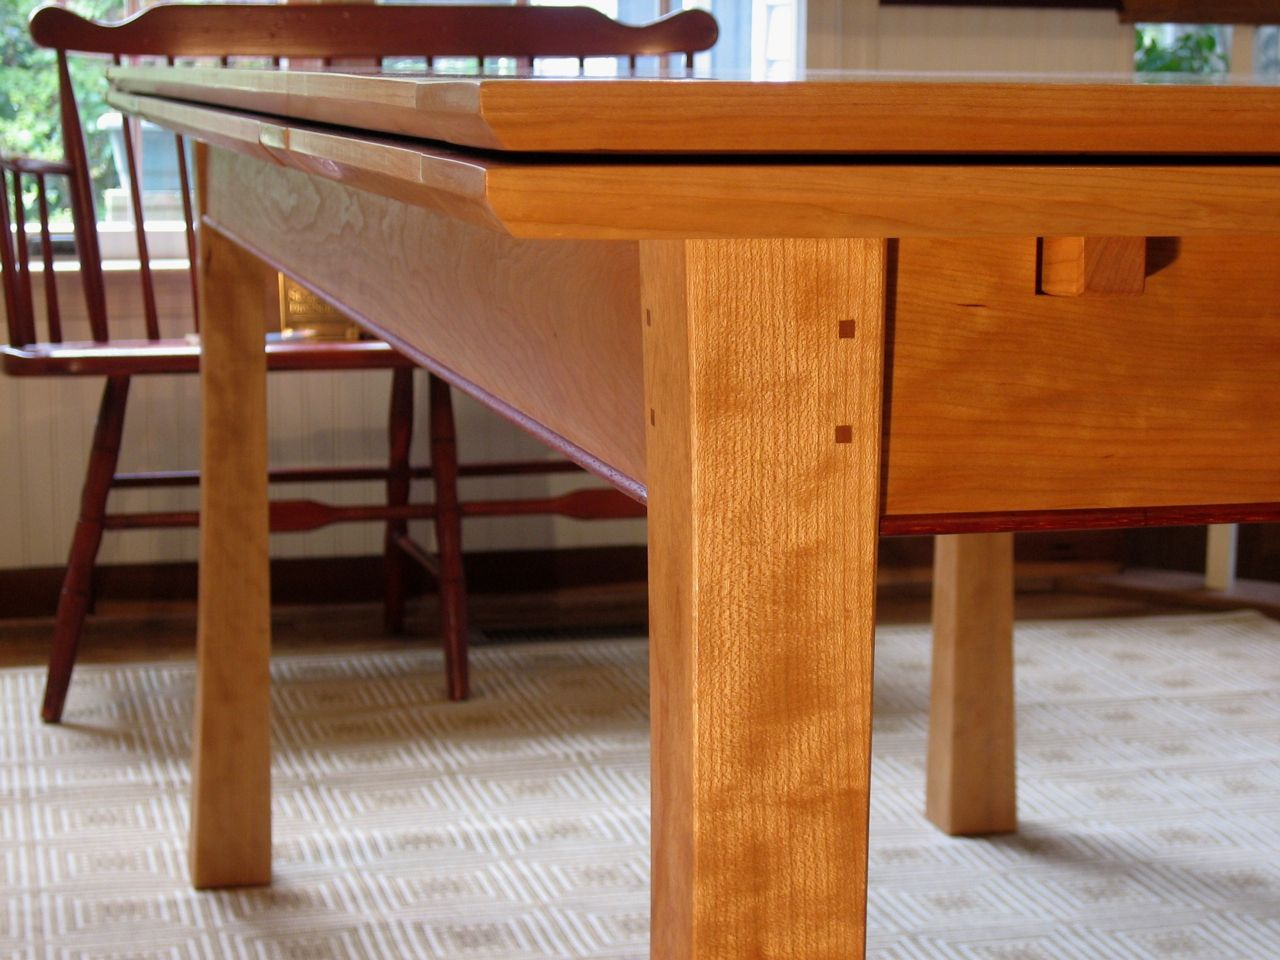 Hand Crafted Dutch Pull Out Dining Table by Joseph  : 595727017 from www.custommade.com size 1280 x 960 jpeg 146kB